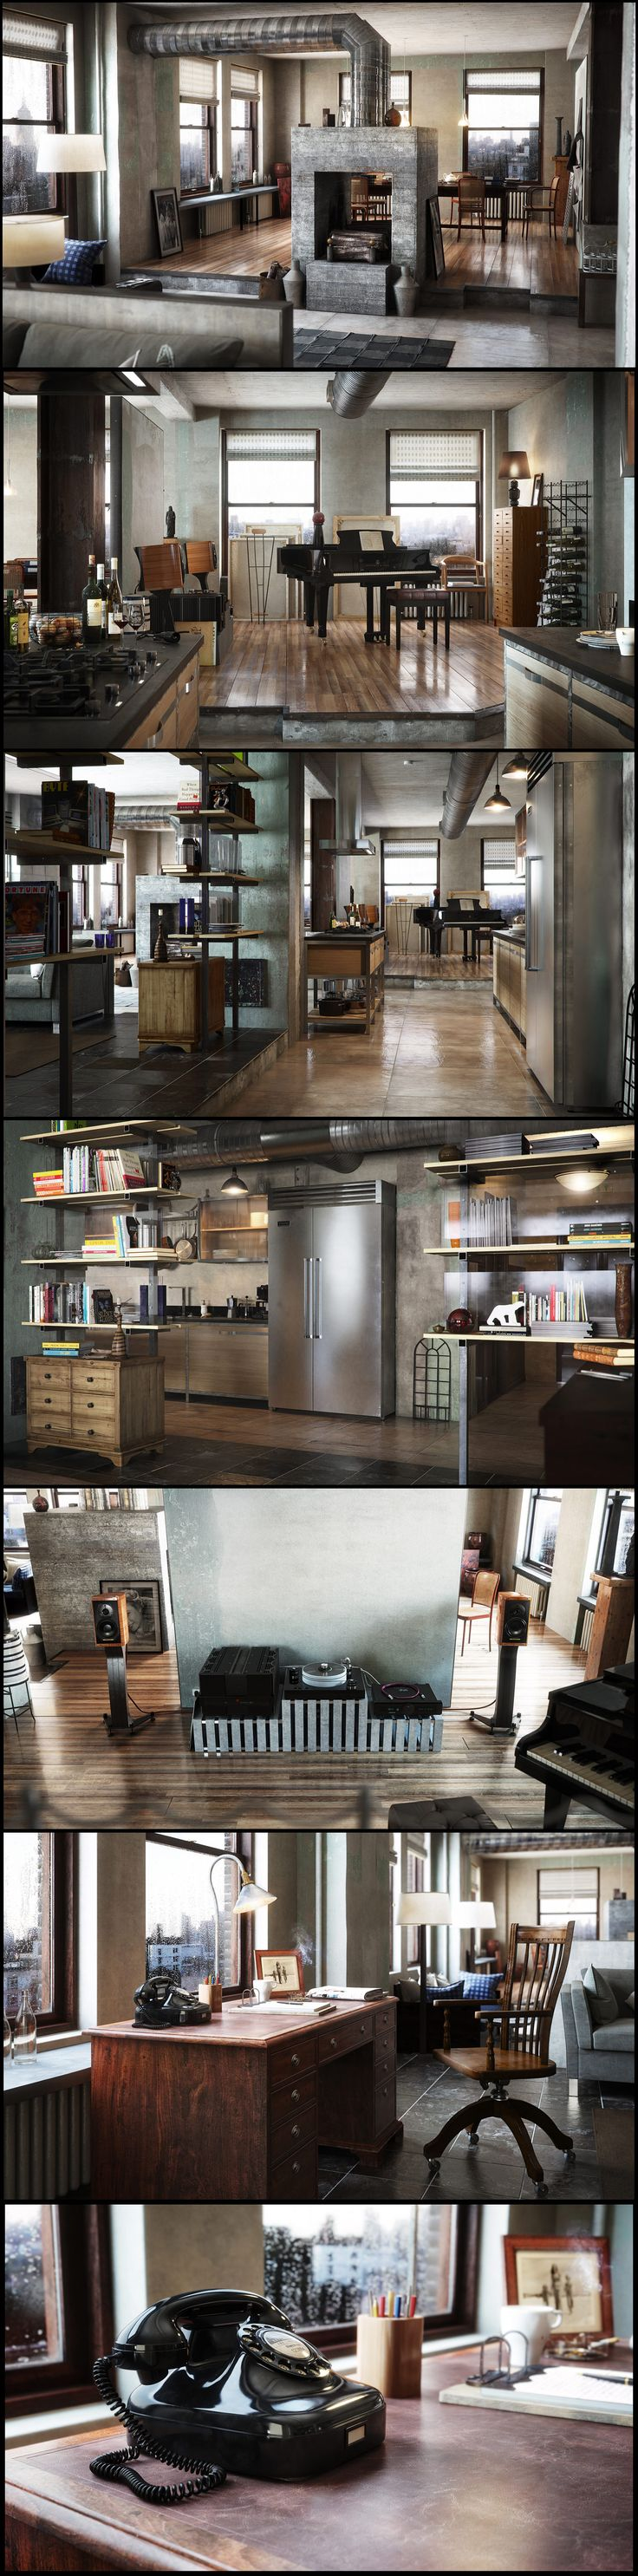 New York Apartment by Latter Got to love what Vray can do for you in these high quality renders. Sick!